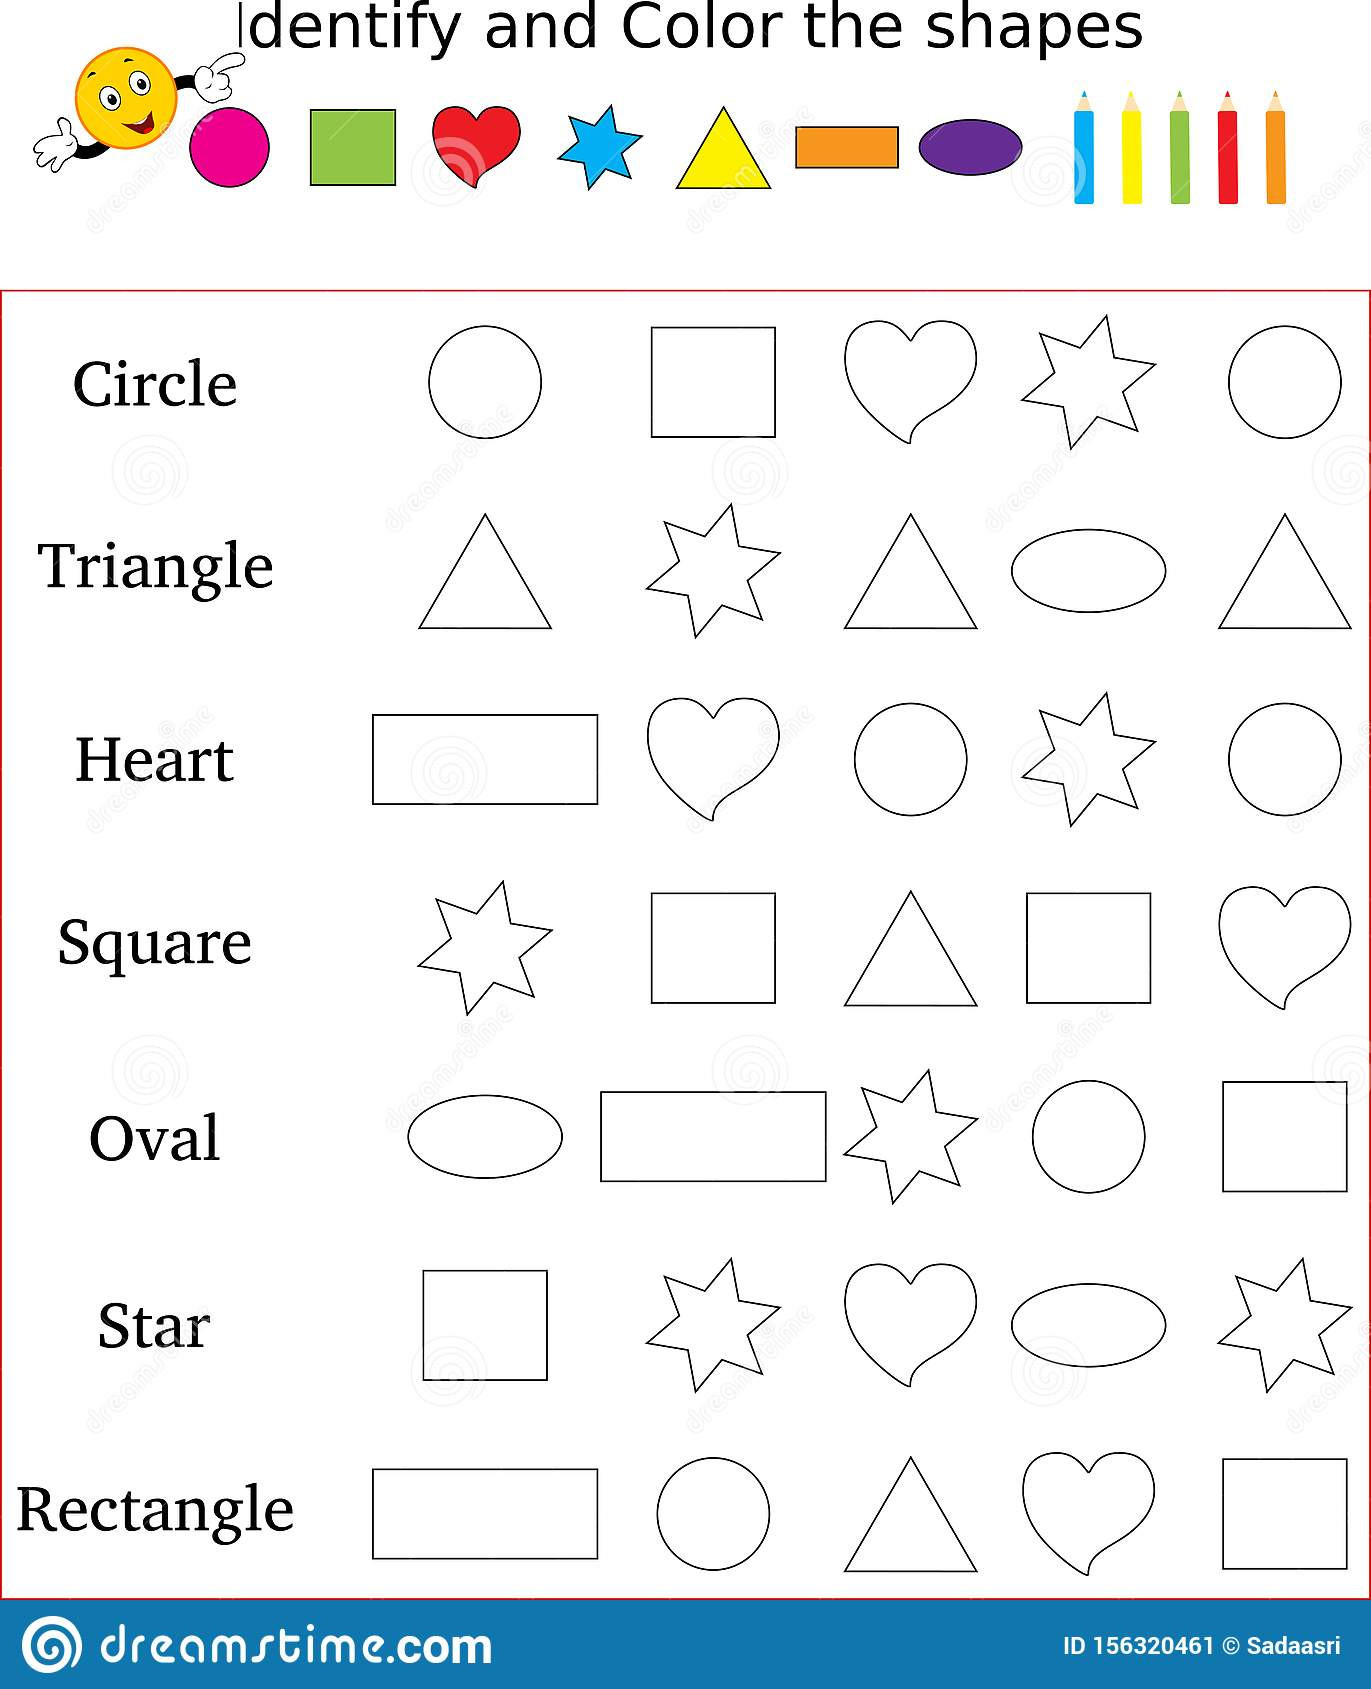 Shapes Worksheets for Kindergarten Identify and Color the Correct Shape Worksheet Stock Image